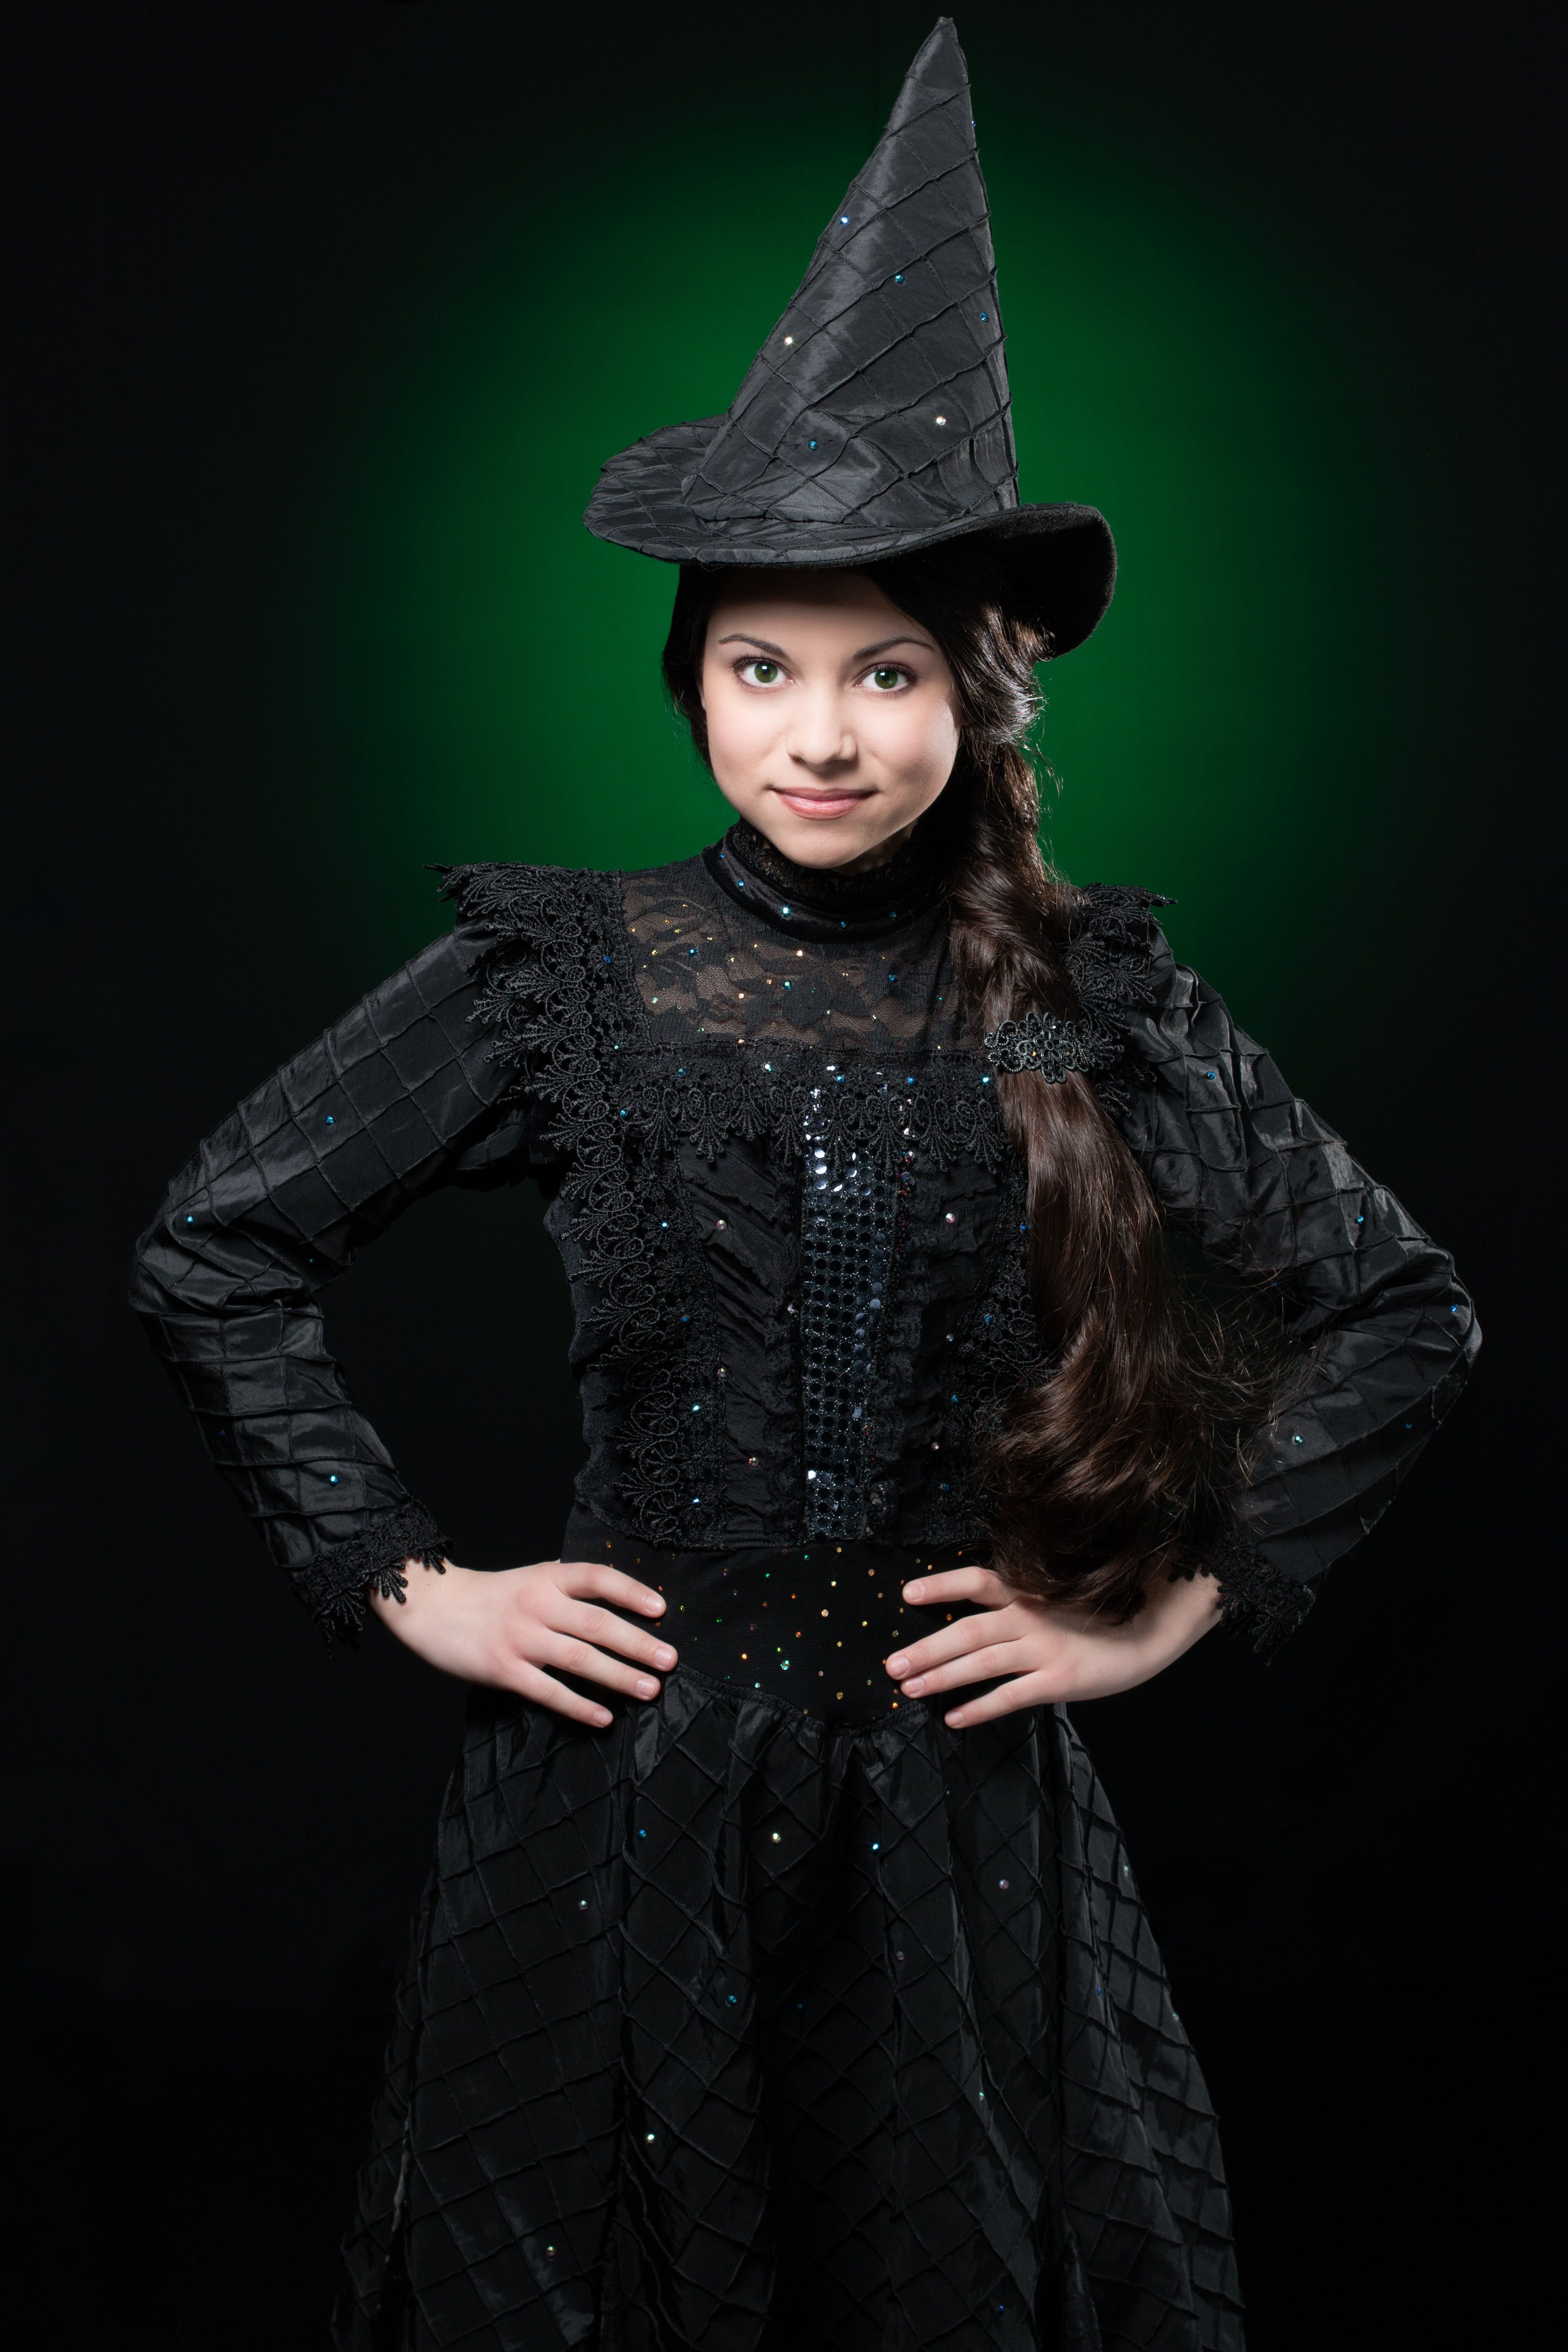 Deluxe Elphaba Wicked Witch of the West Costume Inspired by ...